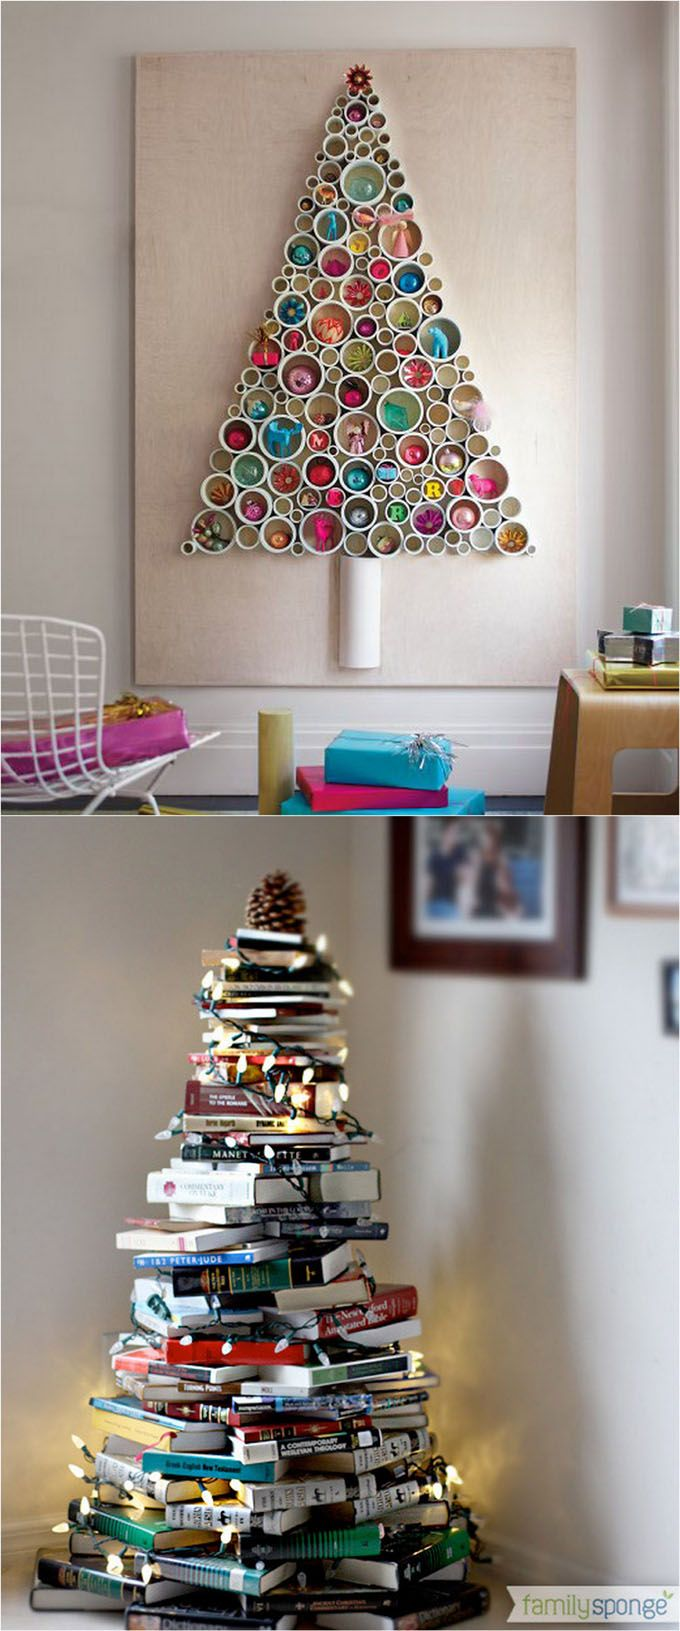 18 unconventional and beautiful diy christmas trees ideas to create unique christmas decorations for your home perfect for any space in your home